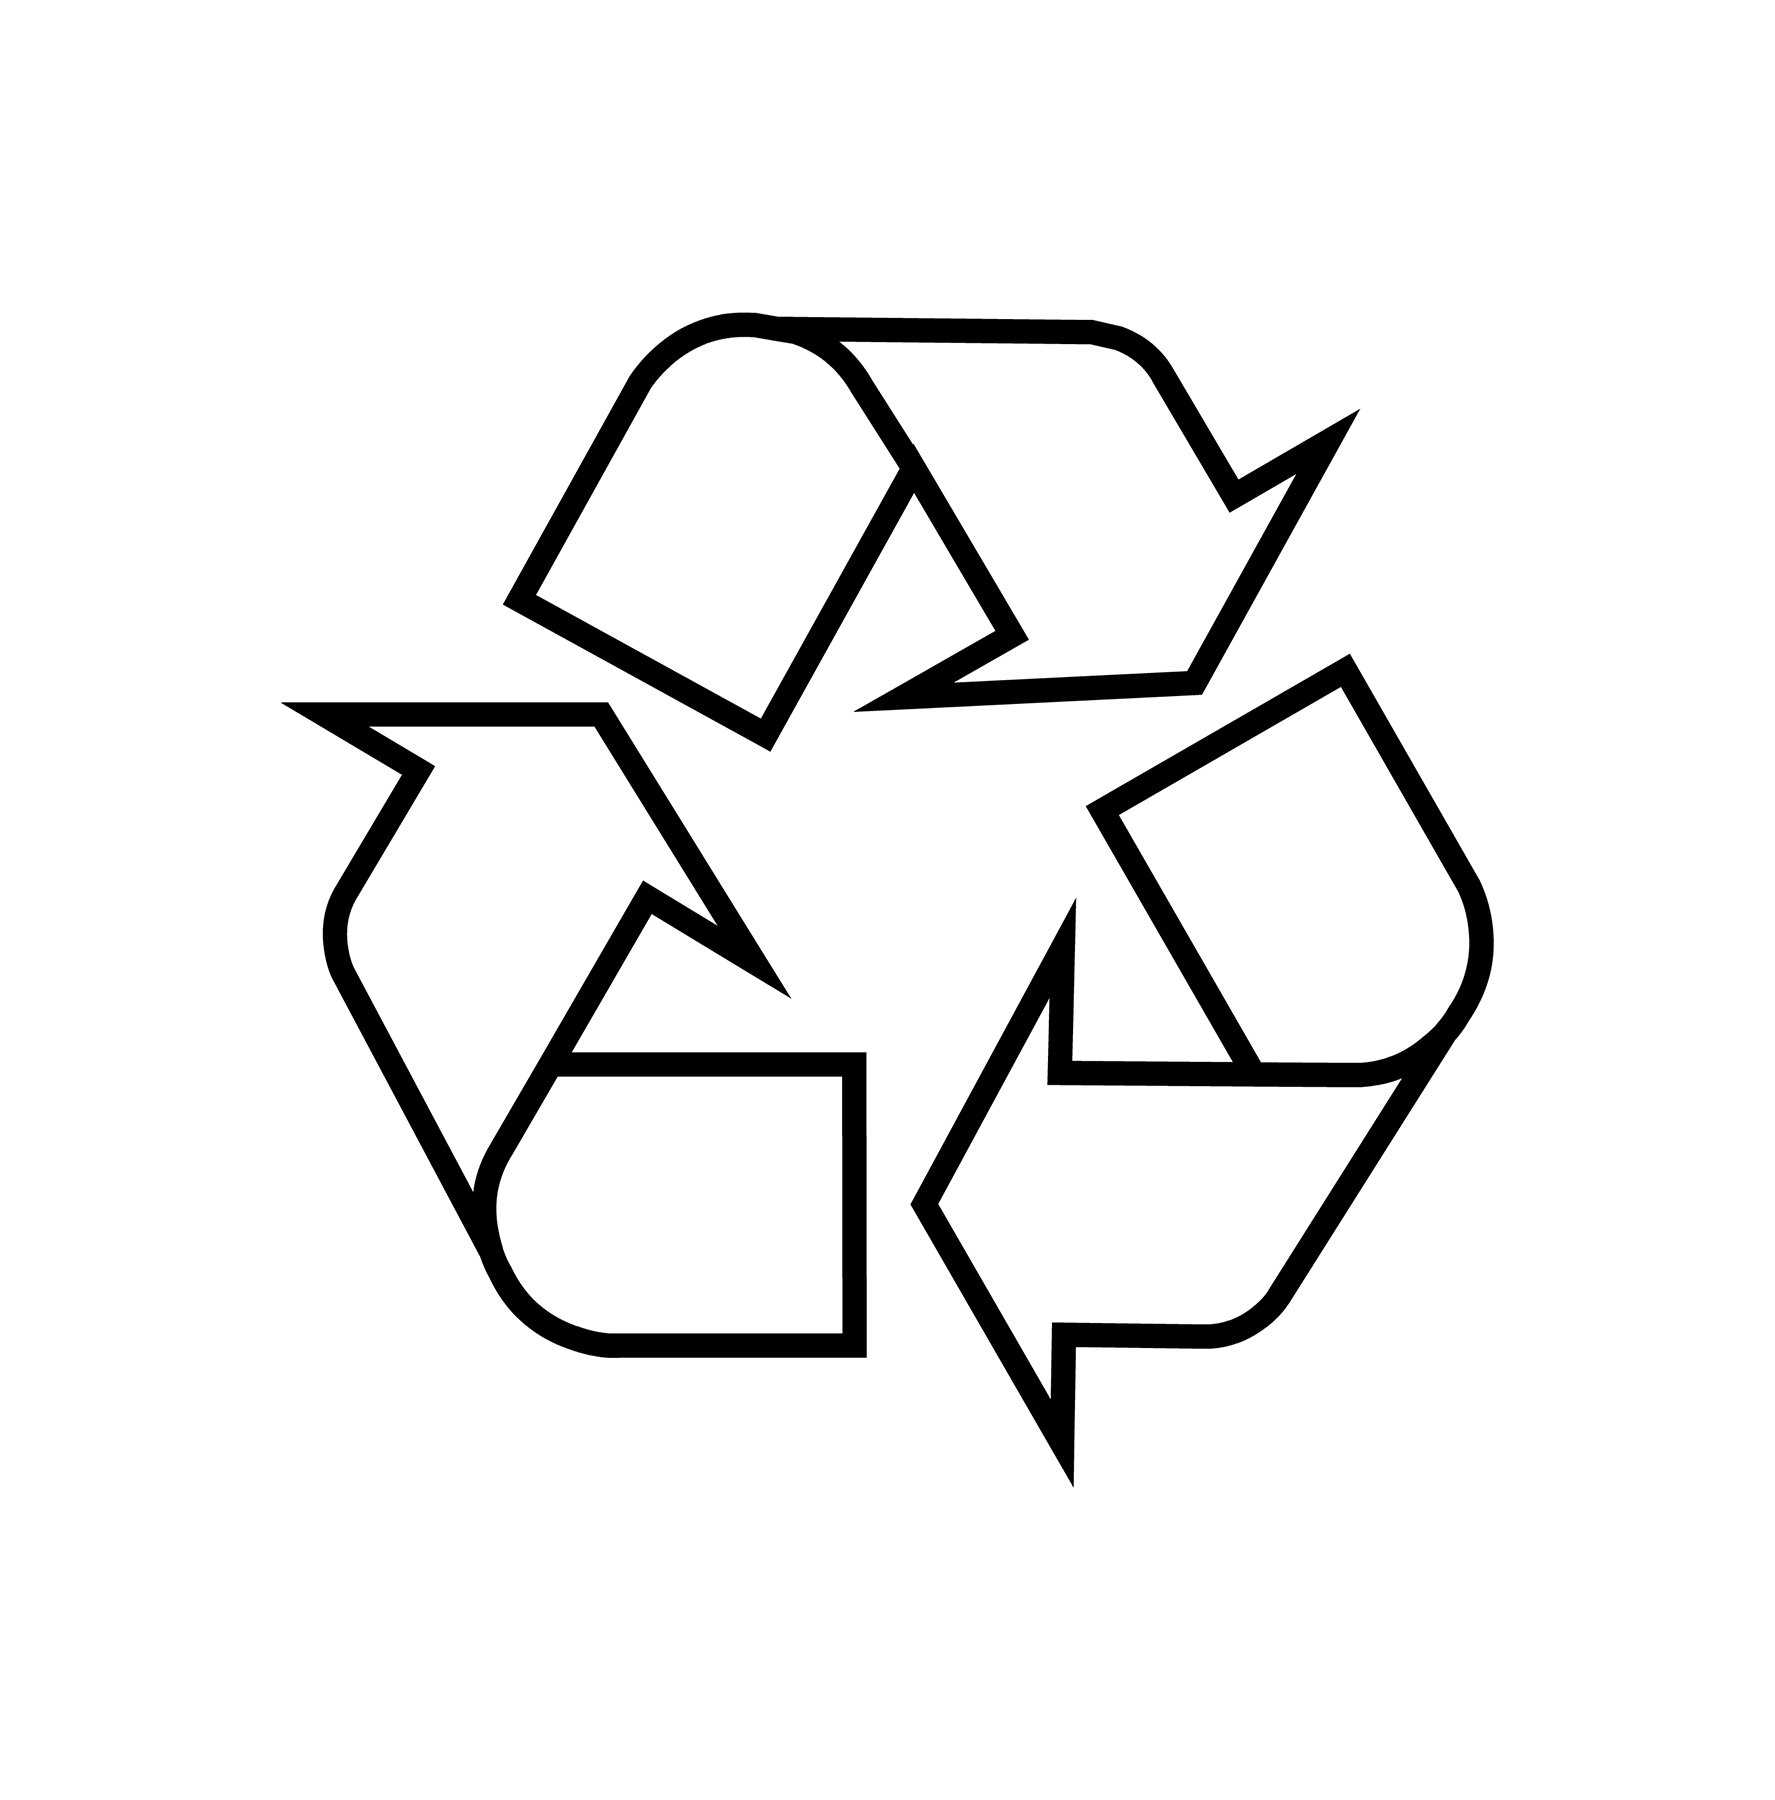 recyclable-symbol